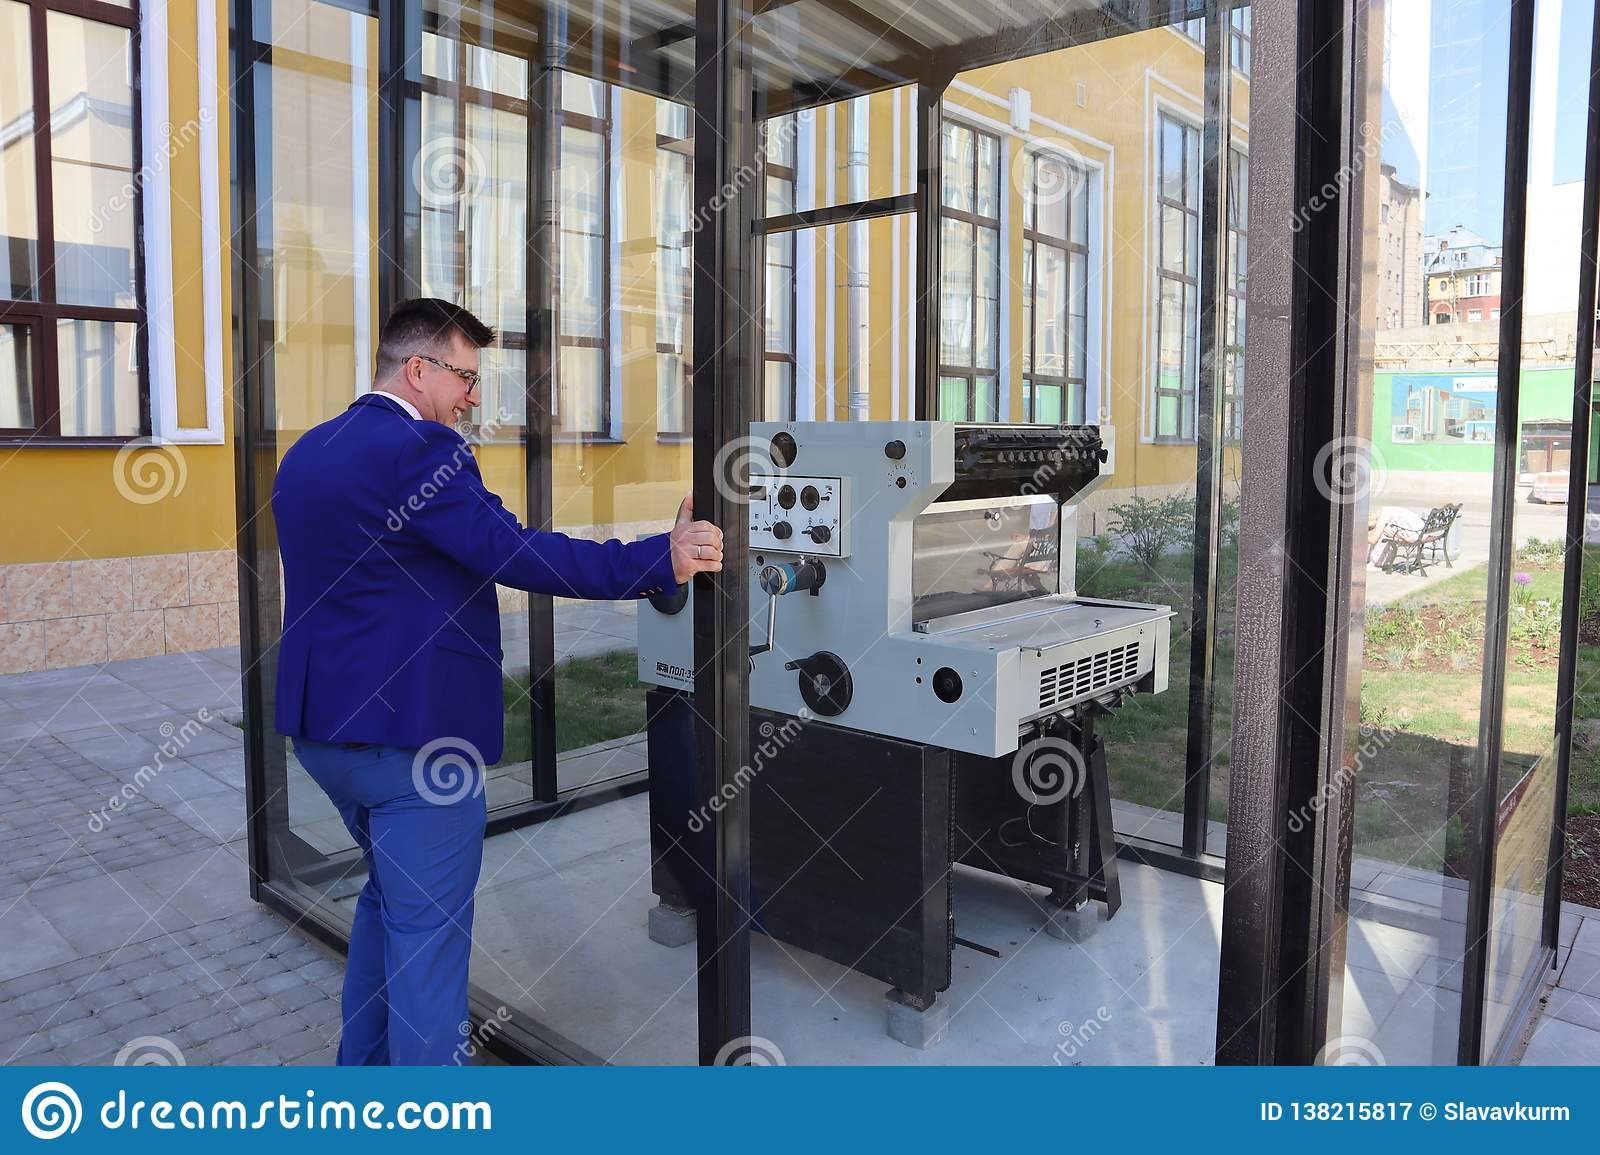 Man in a blue suit looks at the printing press behind the glass